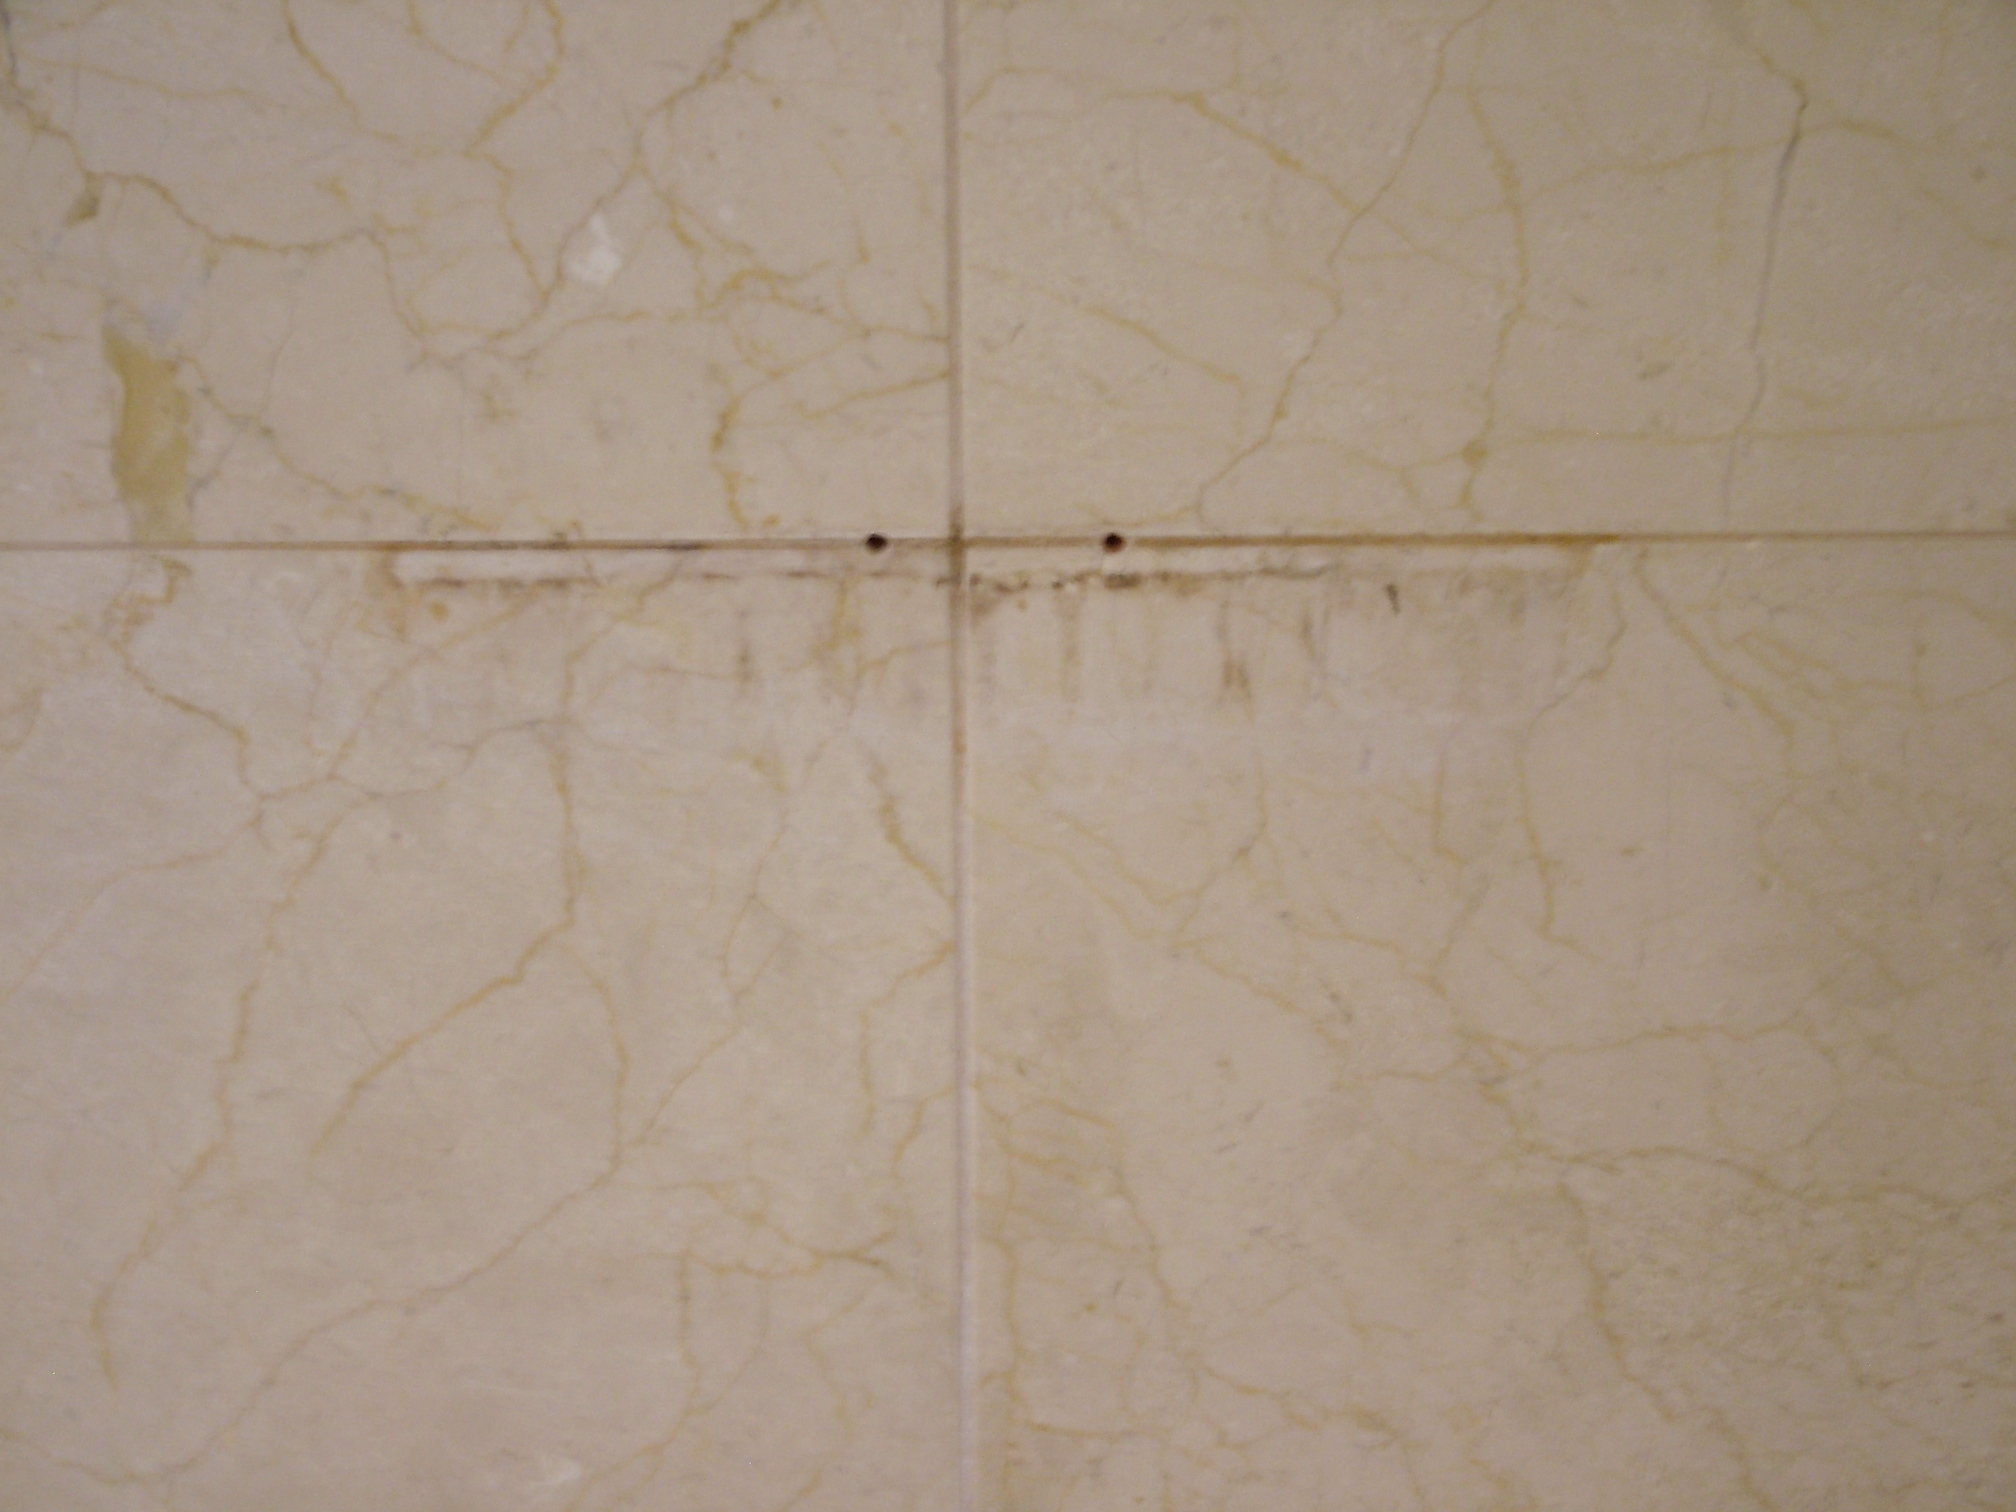 Re Ltd Specialists In Marble Cleaning Polishing And